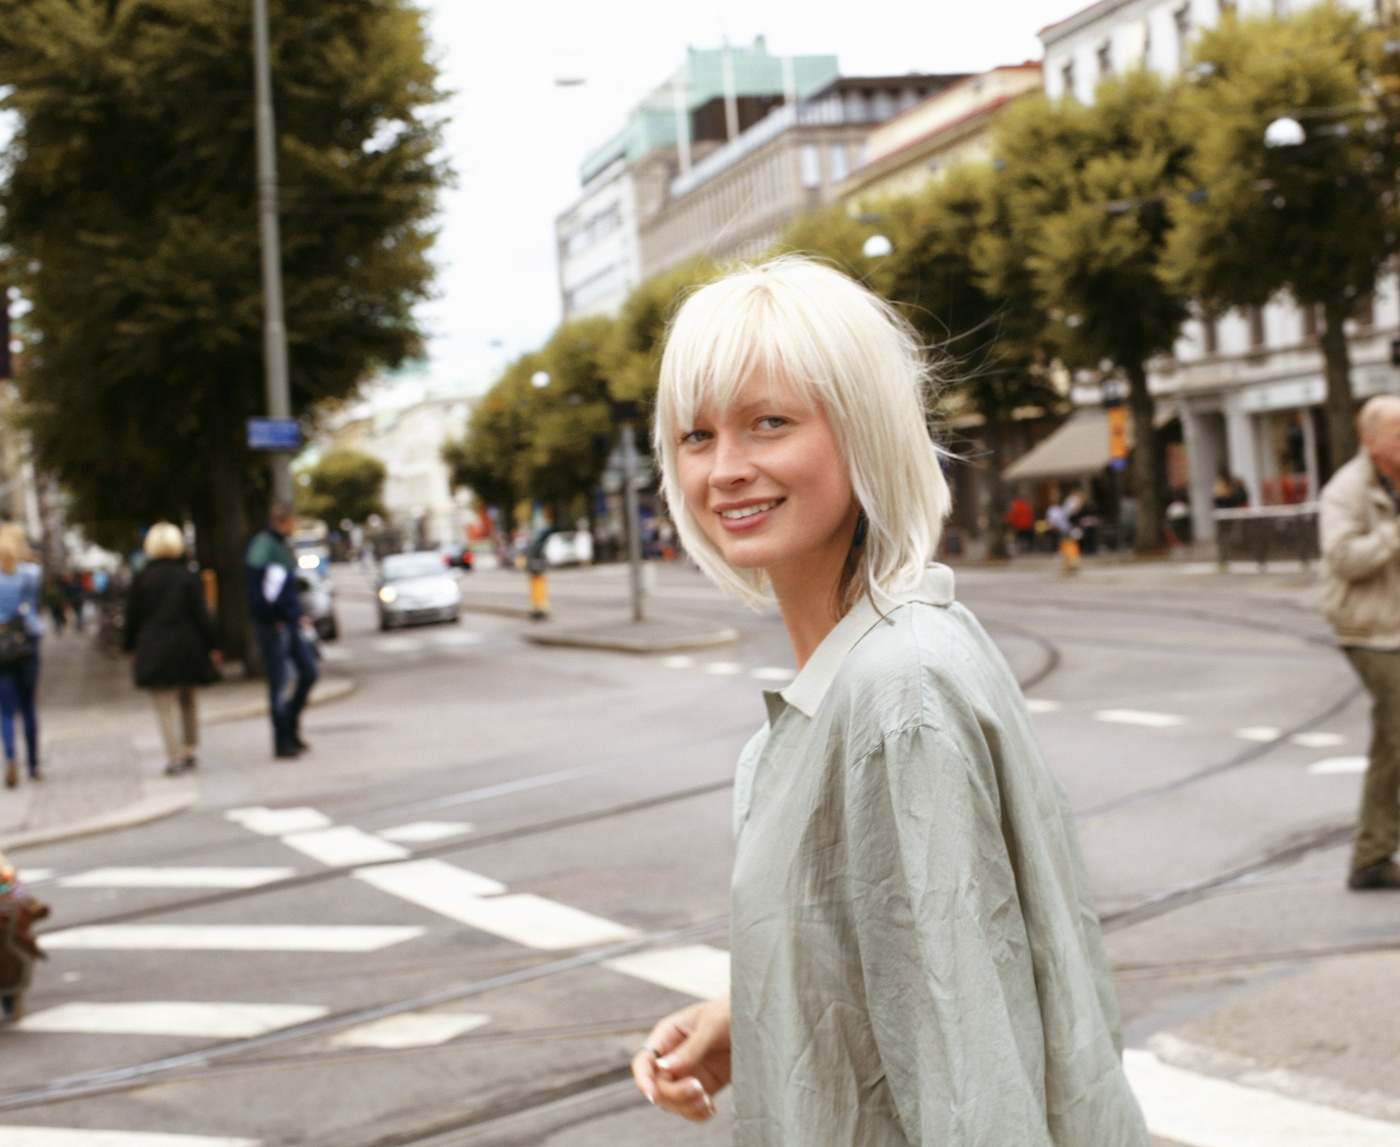 Thumbnail for Scandinavian Beauty Believes Your Skin-Care Routine Should Be 3 Steps Max